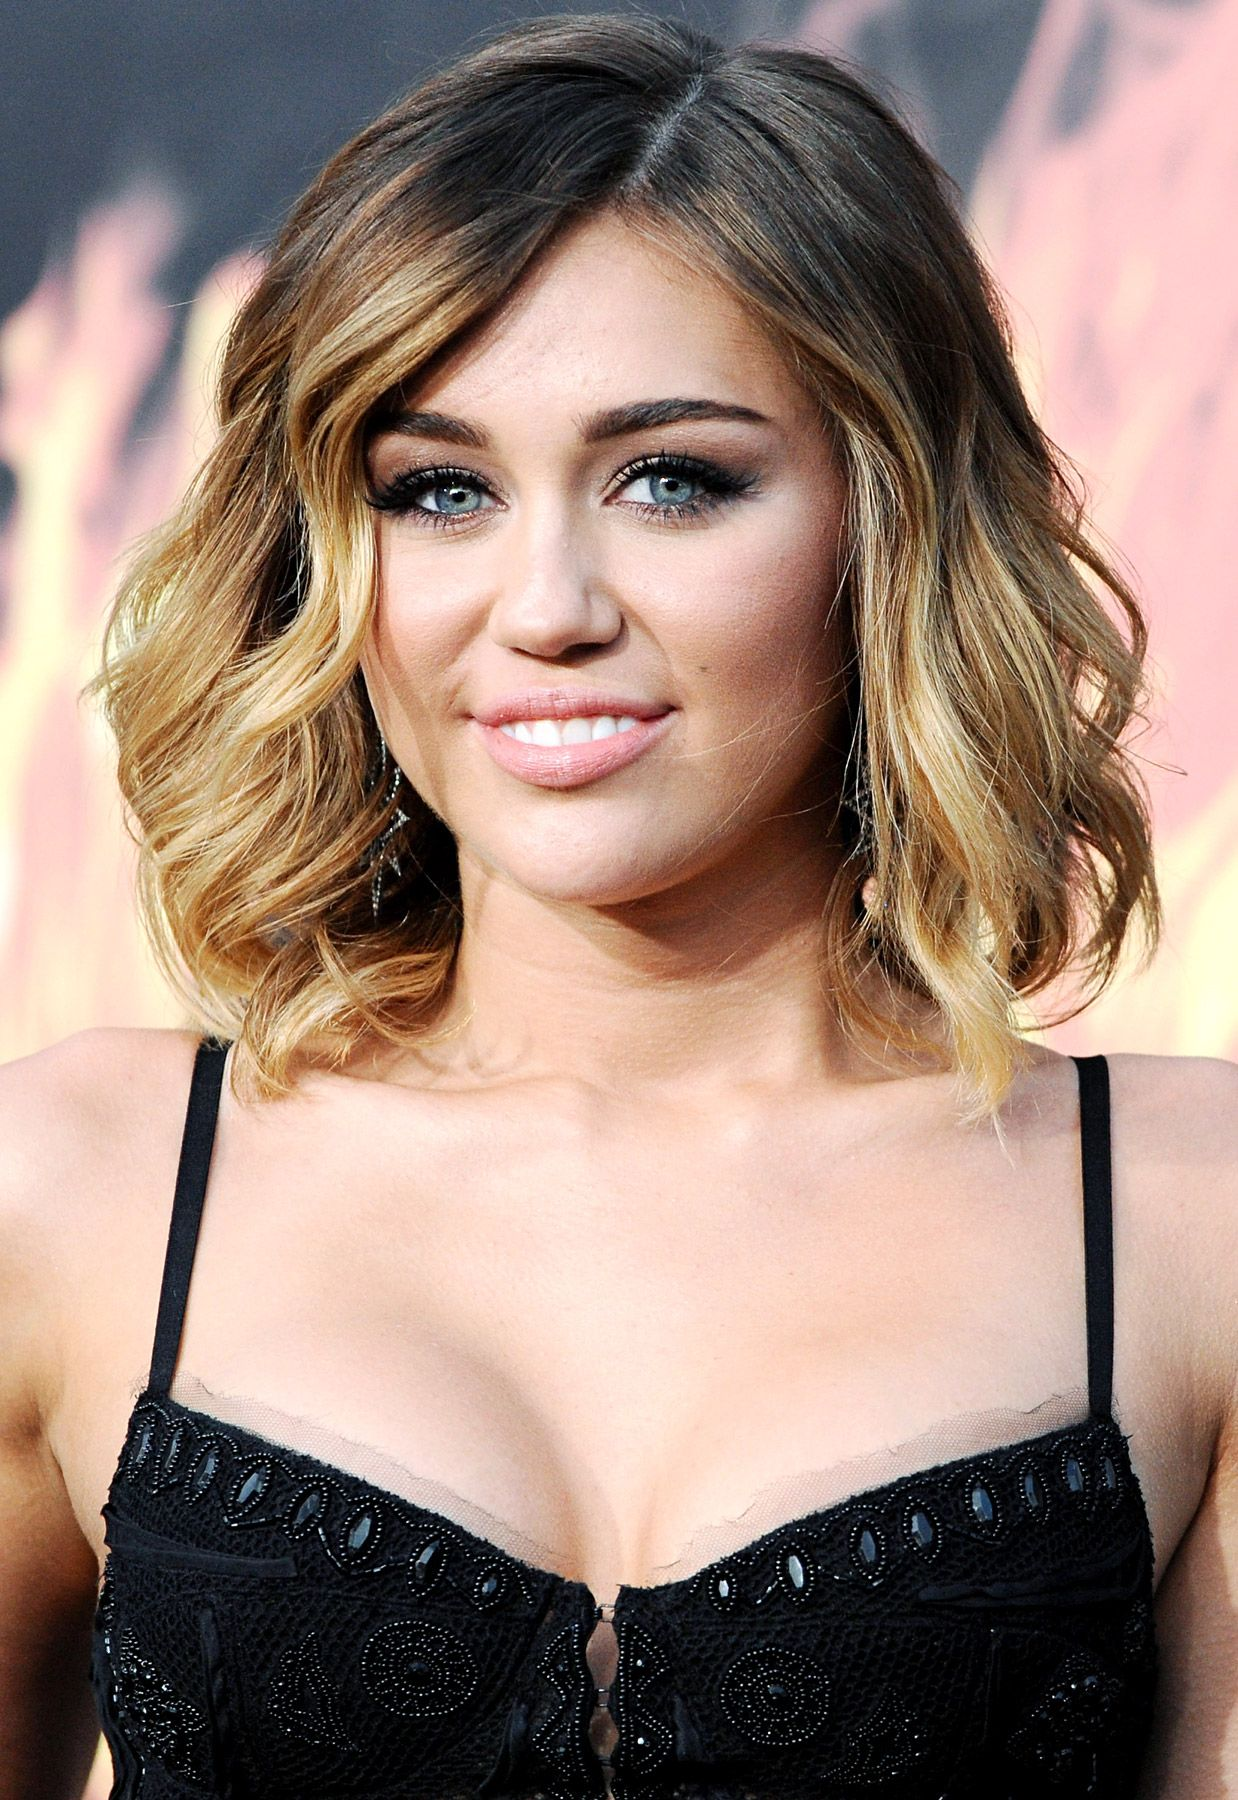 foto Miley Cyrus's Hair: We Rank the Good, the Bad, and theSpikey